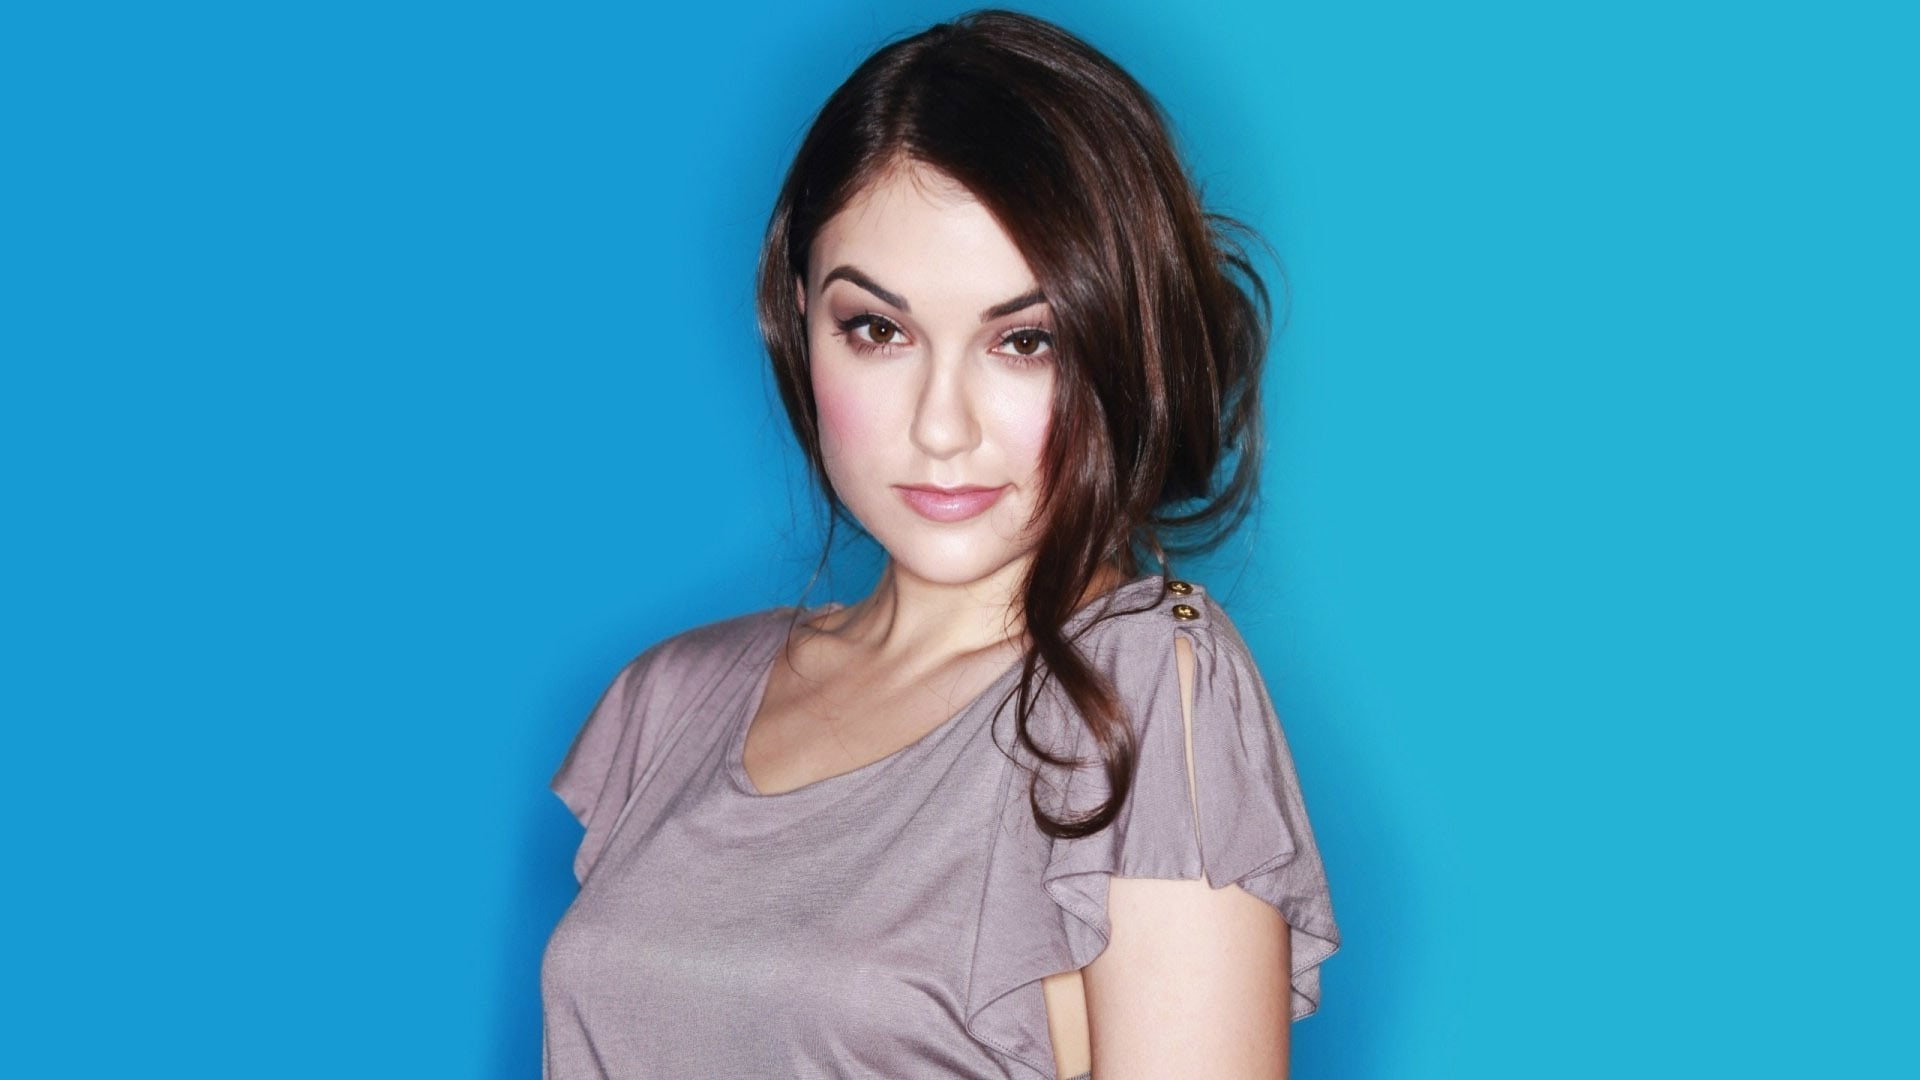 Sasha Grey Screensavers